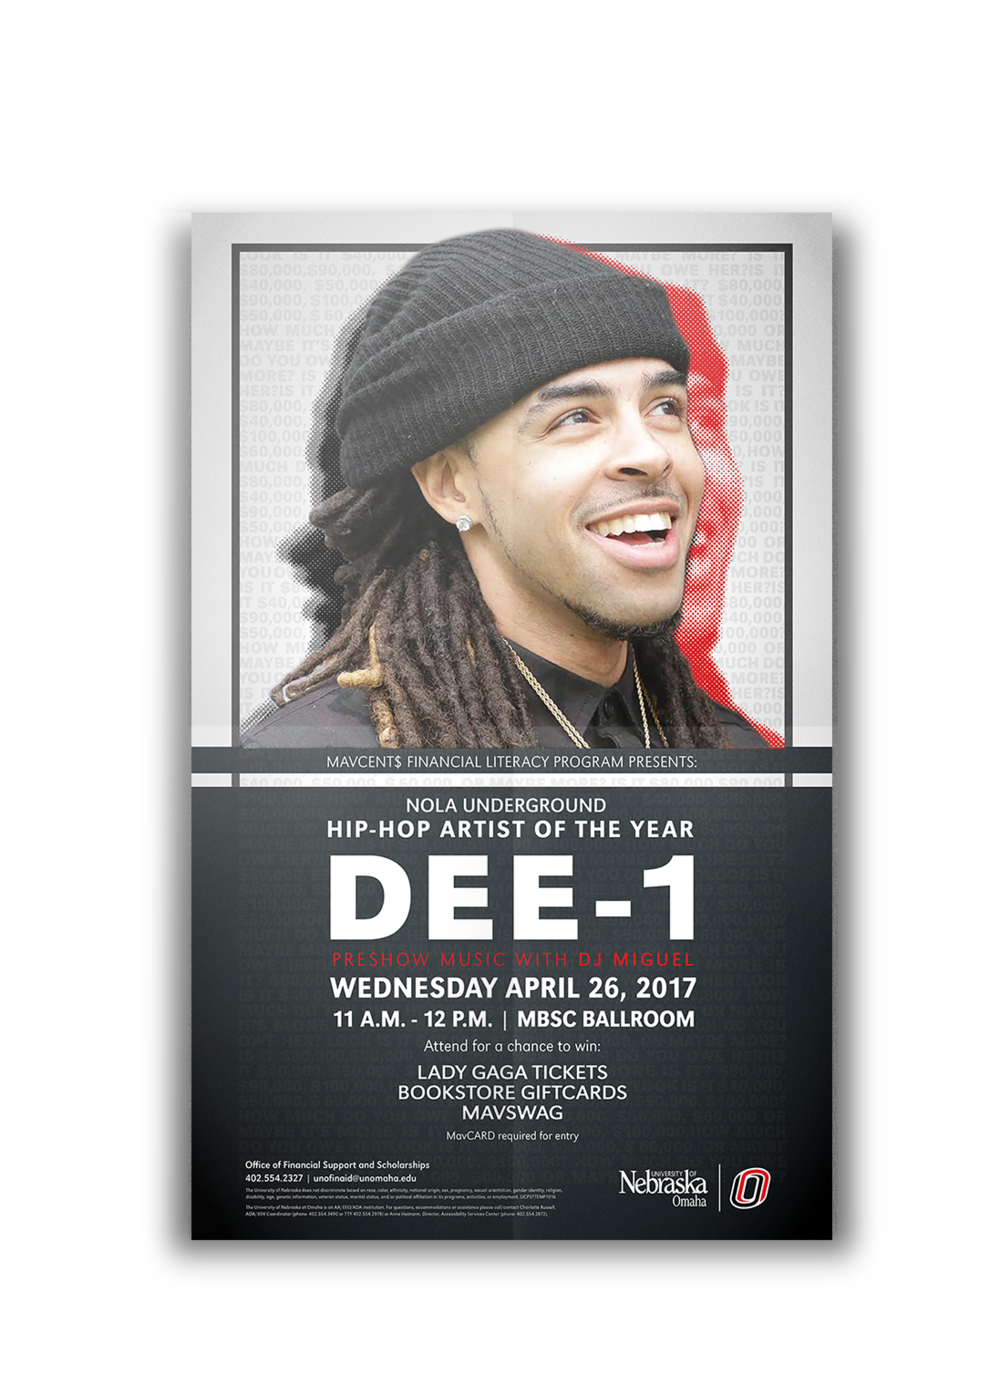 DEE-1 Concert - Poster for Hip Hop artist Dee-1 hosted by the University of Nebraska at Omaha